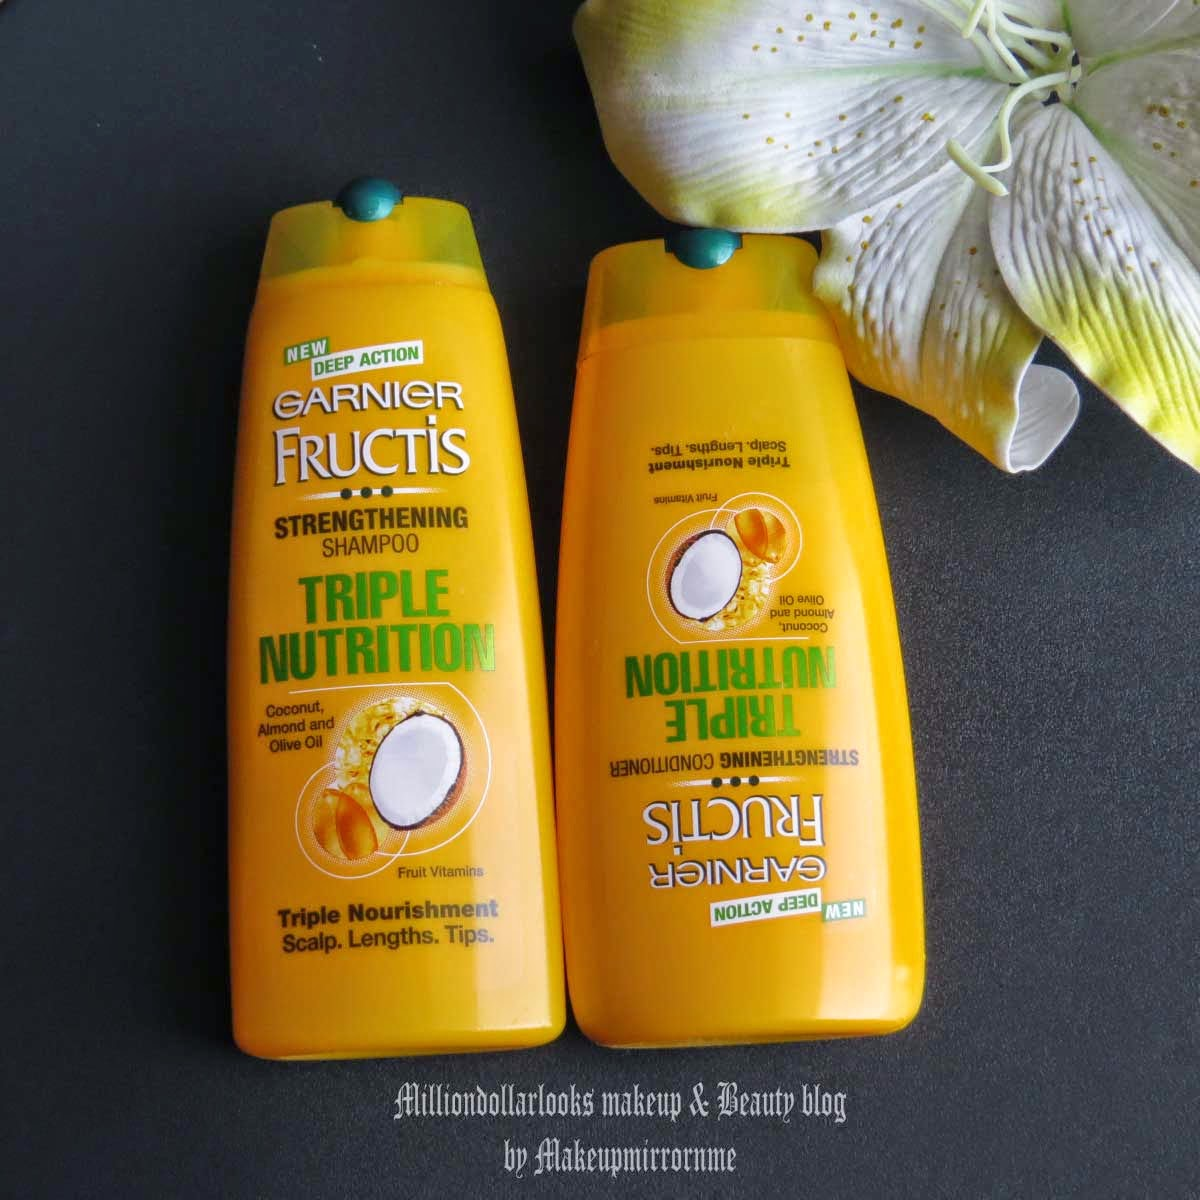 Garnier Fructis Triple Nutrition Strengthening Shampoo & Conditioner Review, Indian makeup and beauty blog, Garnier shamppo review India, Garnier hair conditioner review India, Best shampoo for hairfall, Indian beauty bloggers, Indian beauty blog, Garnier india, Best shampoos for hair fall, New launch garnier products, milliondollarlooks makeup and beauty